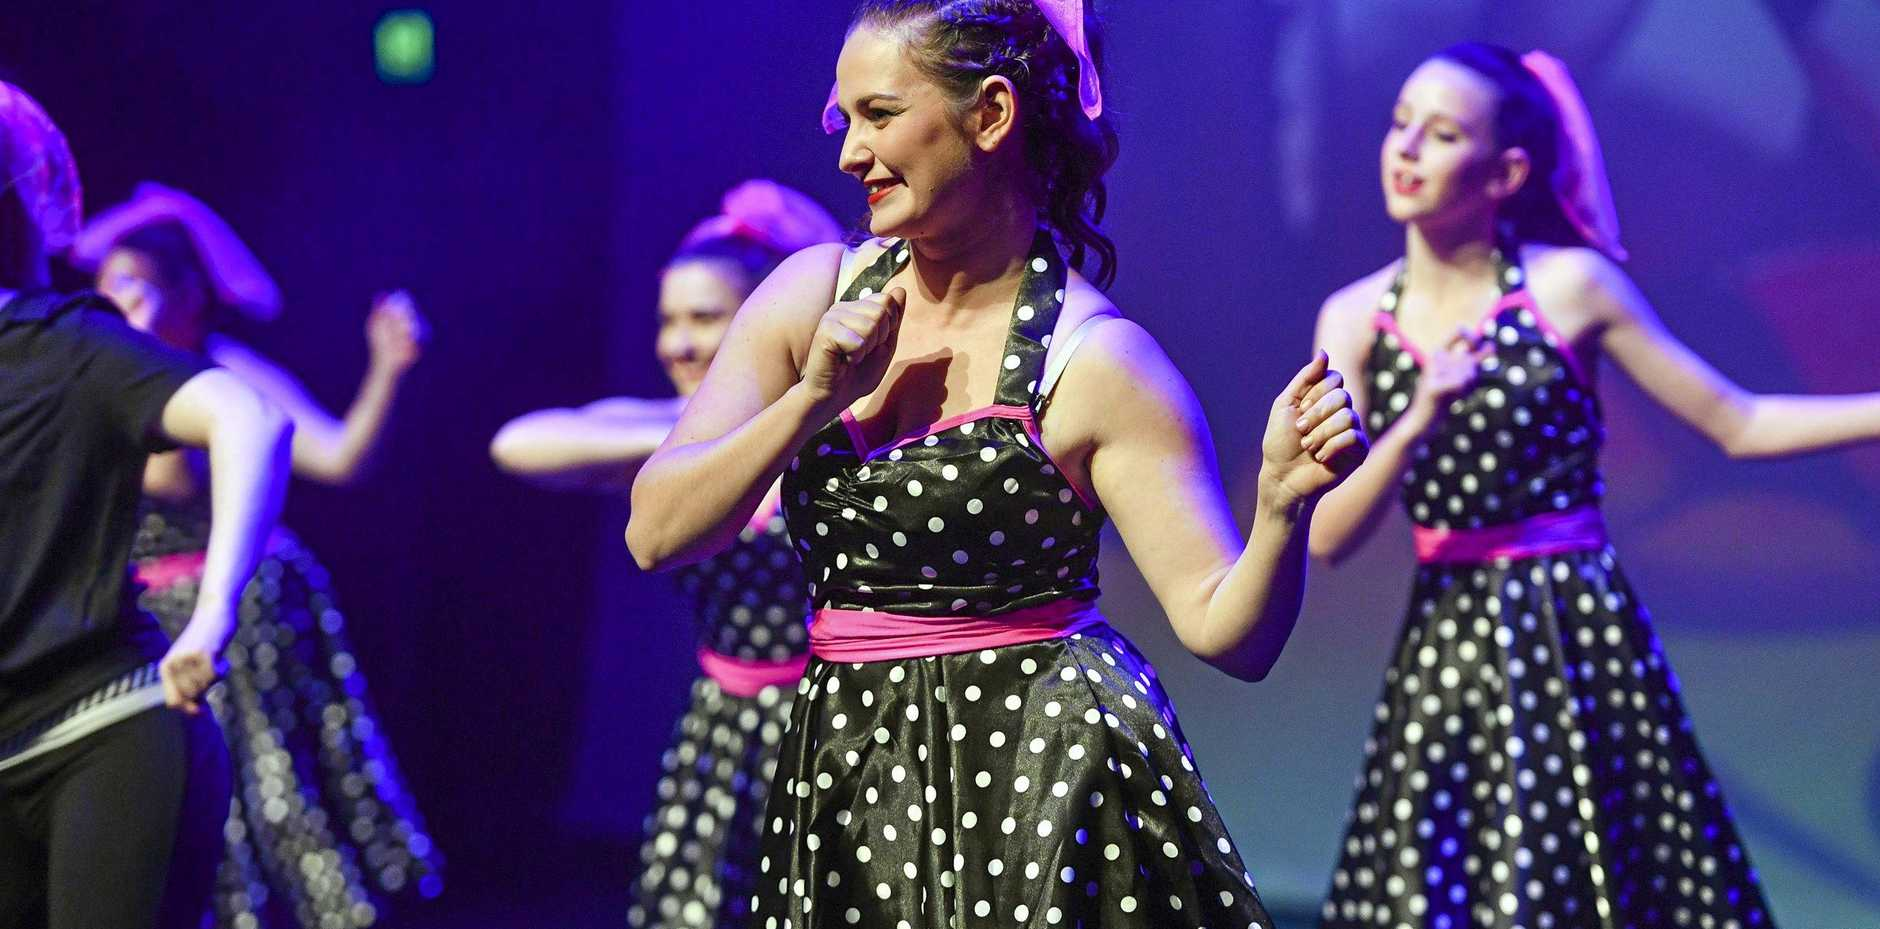 The Shining Stars Seniors class performing Love Shack at the Raw Creative Studios annual showcase 2019, held at Gladstone Entertainment Convention Centre.